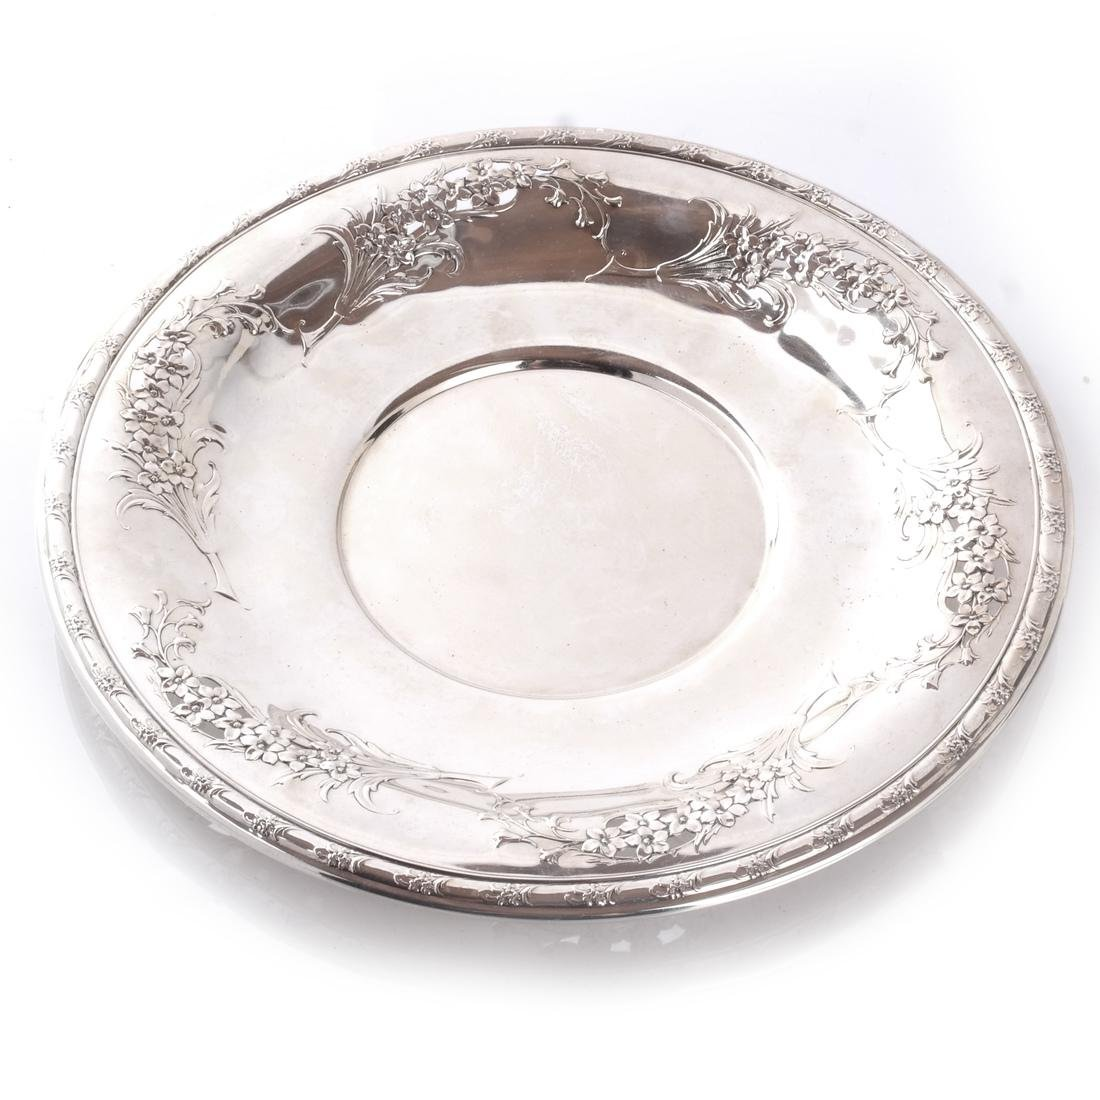 3 Sterling Silver Serving Dishes - 2